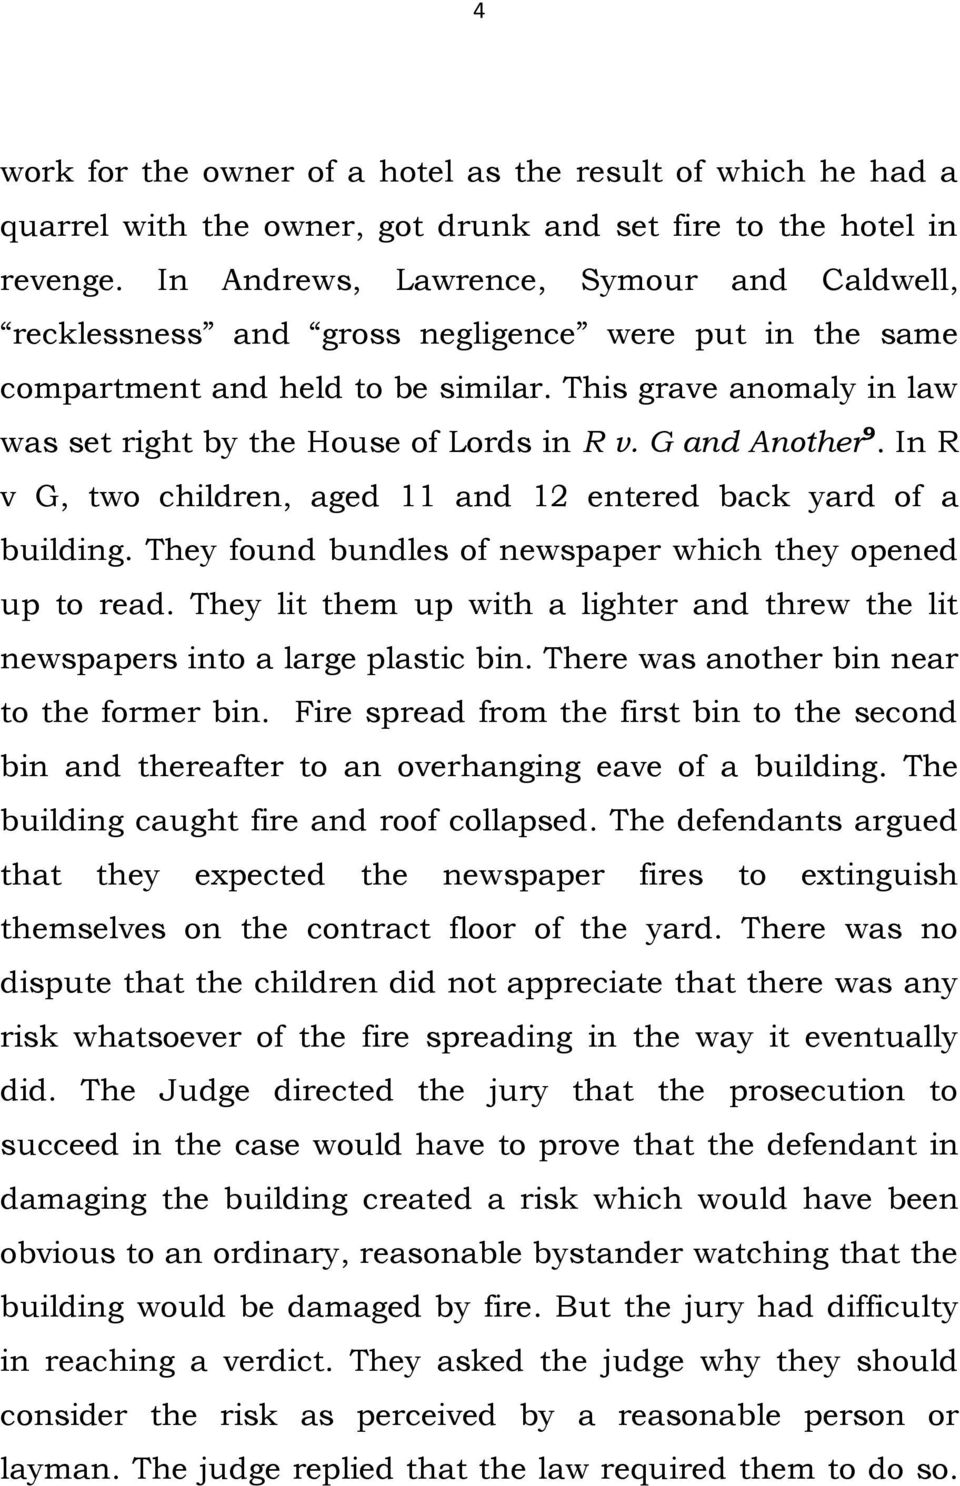 This grave anomaly in law was set right by the House of Lords in R v. G and Another 9. In R v G, two children, aged 11 and 12 entered back yard of a building.